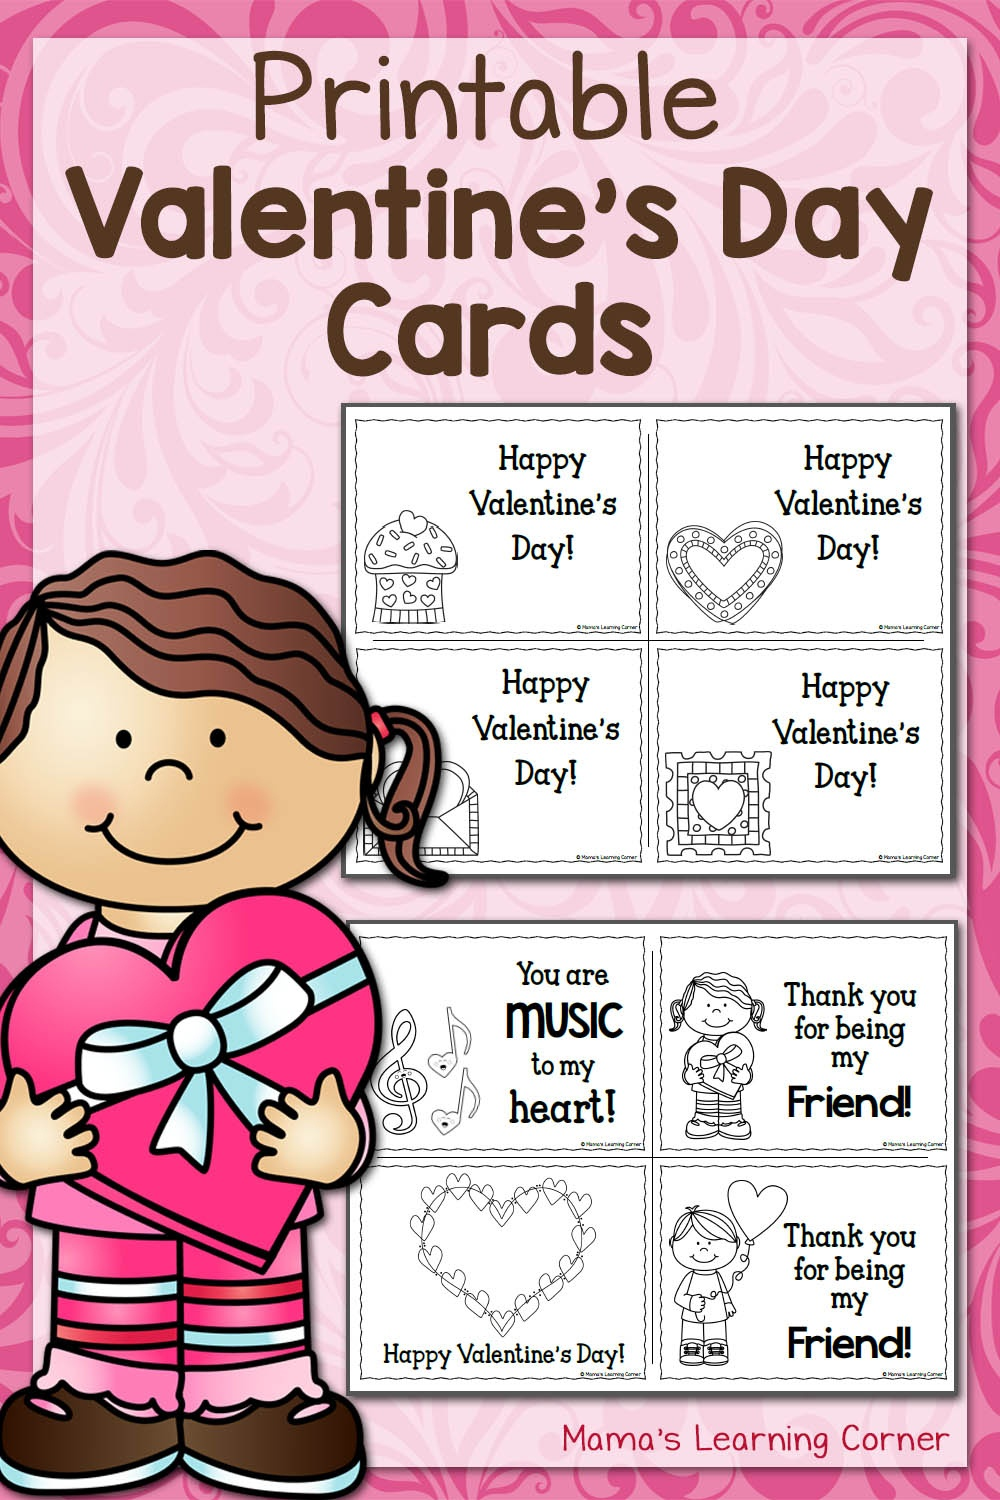 Printable Valentine's Day Cards - Mamas Learning Corner - Free Printable Color Your Own Cards